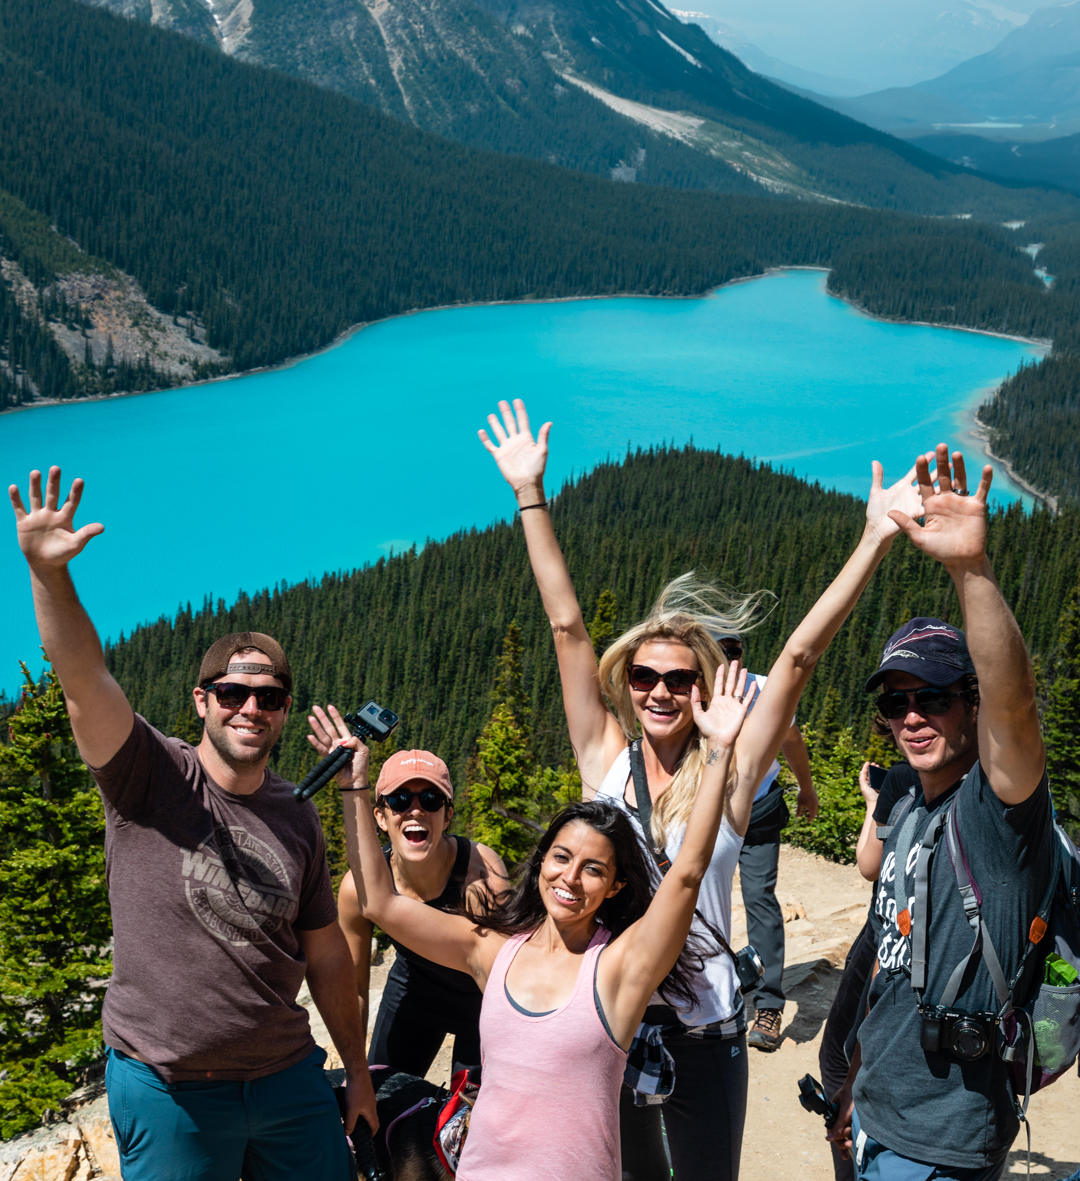 An unforgettable, pinch-yourself-to-make-sure-it's-real trip to Canada this summer with our friends  Dan and Lindsay  and  Pete and Jordan.